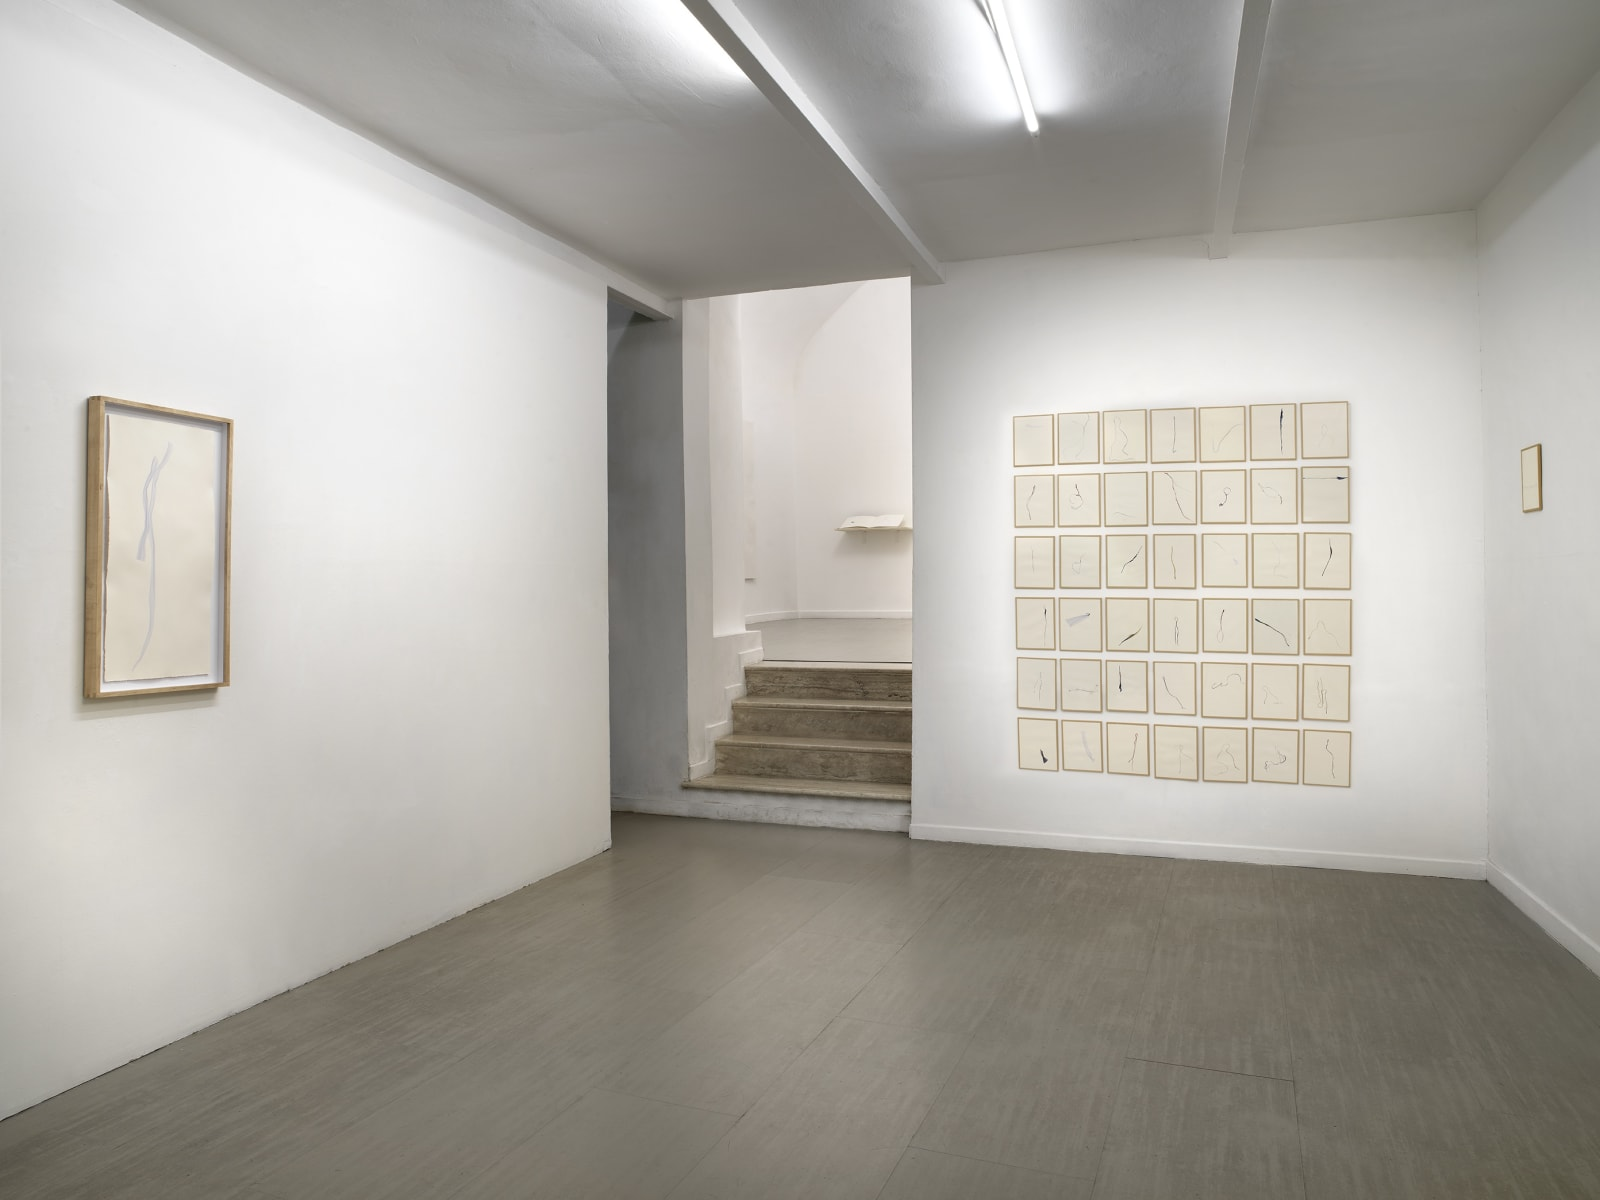 Beatrice Pediconi Nude curated by Cecilia Canziani installation view of the first room ph. Dario Lasagni